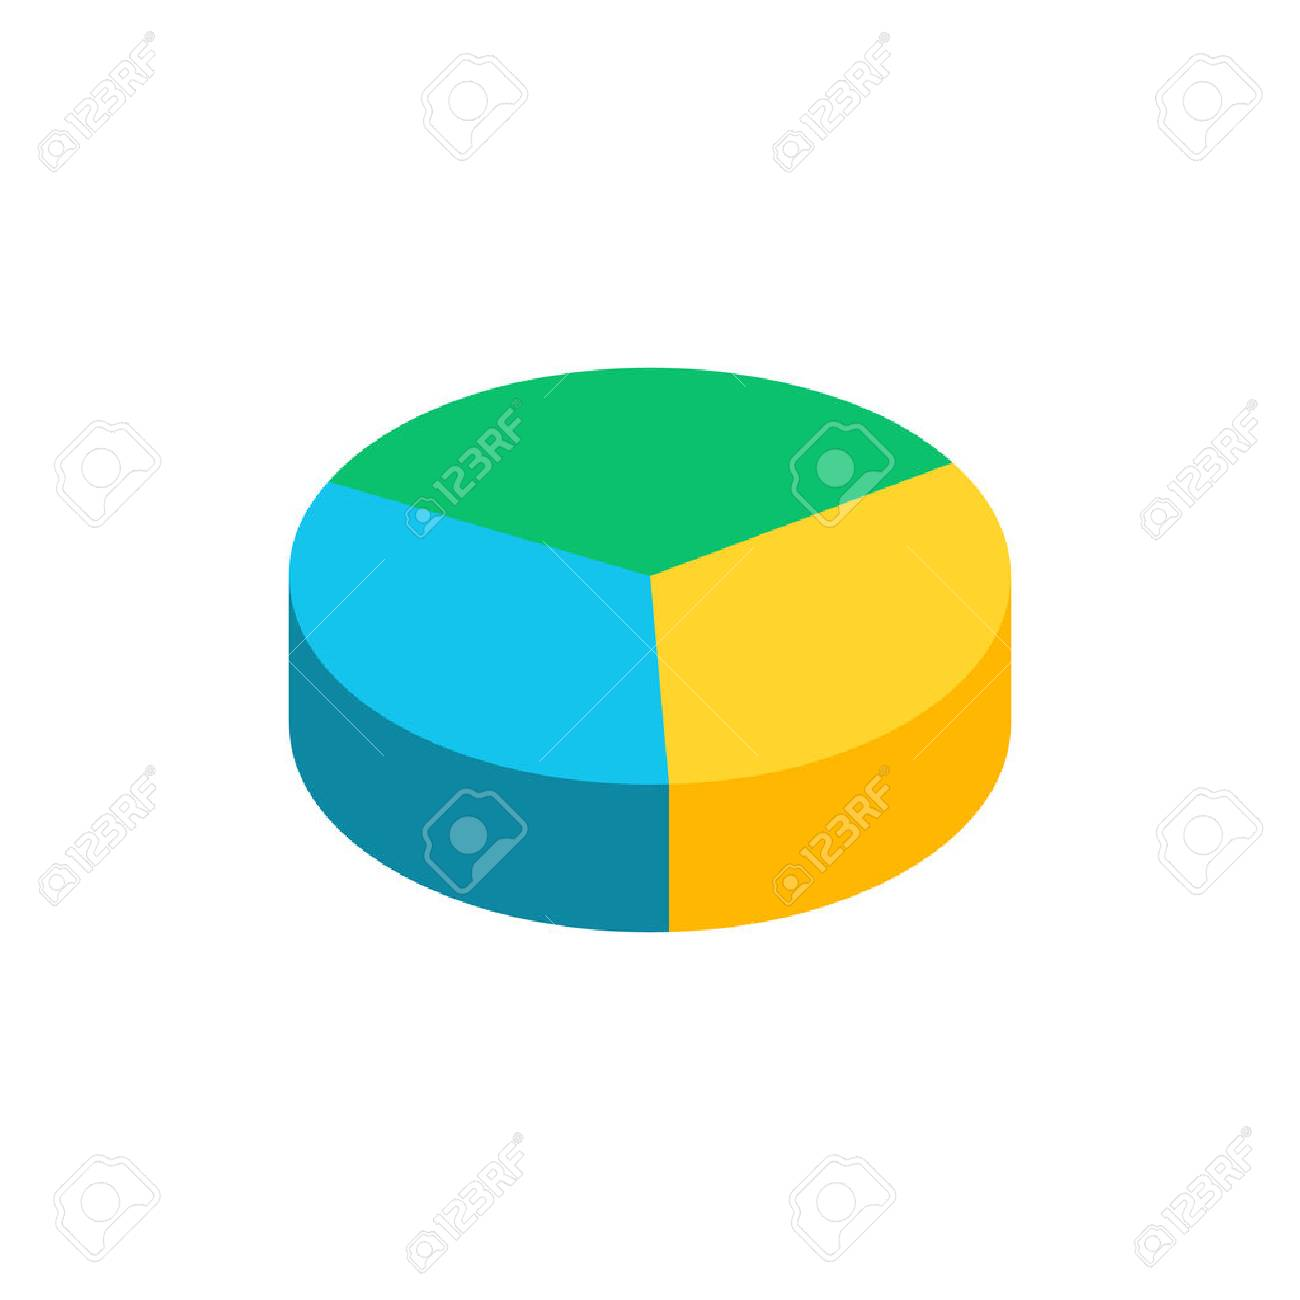 bulk isometric pie graph. template realistic three-dimensional